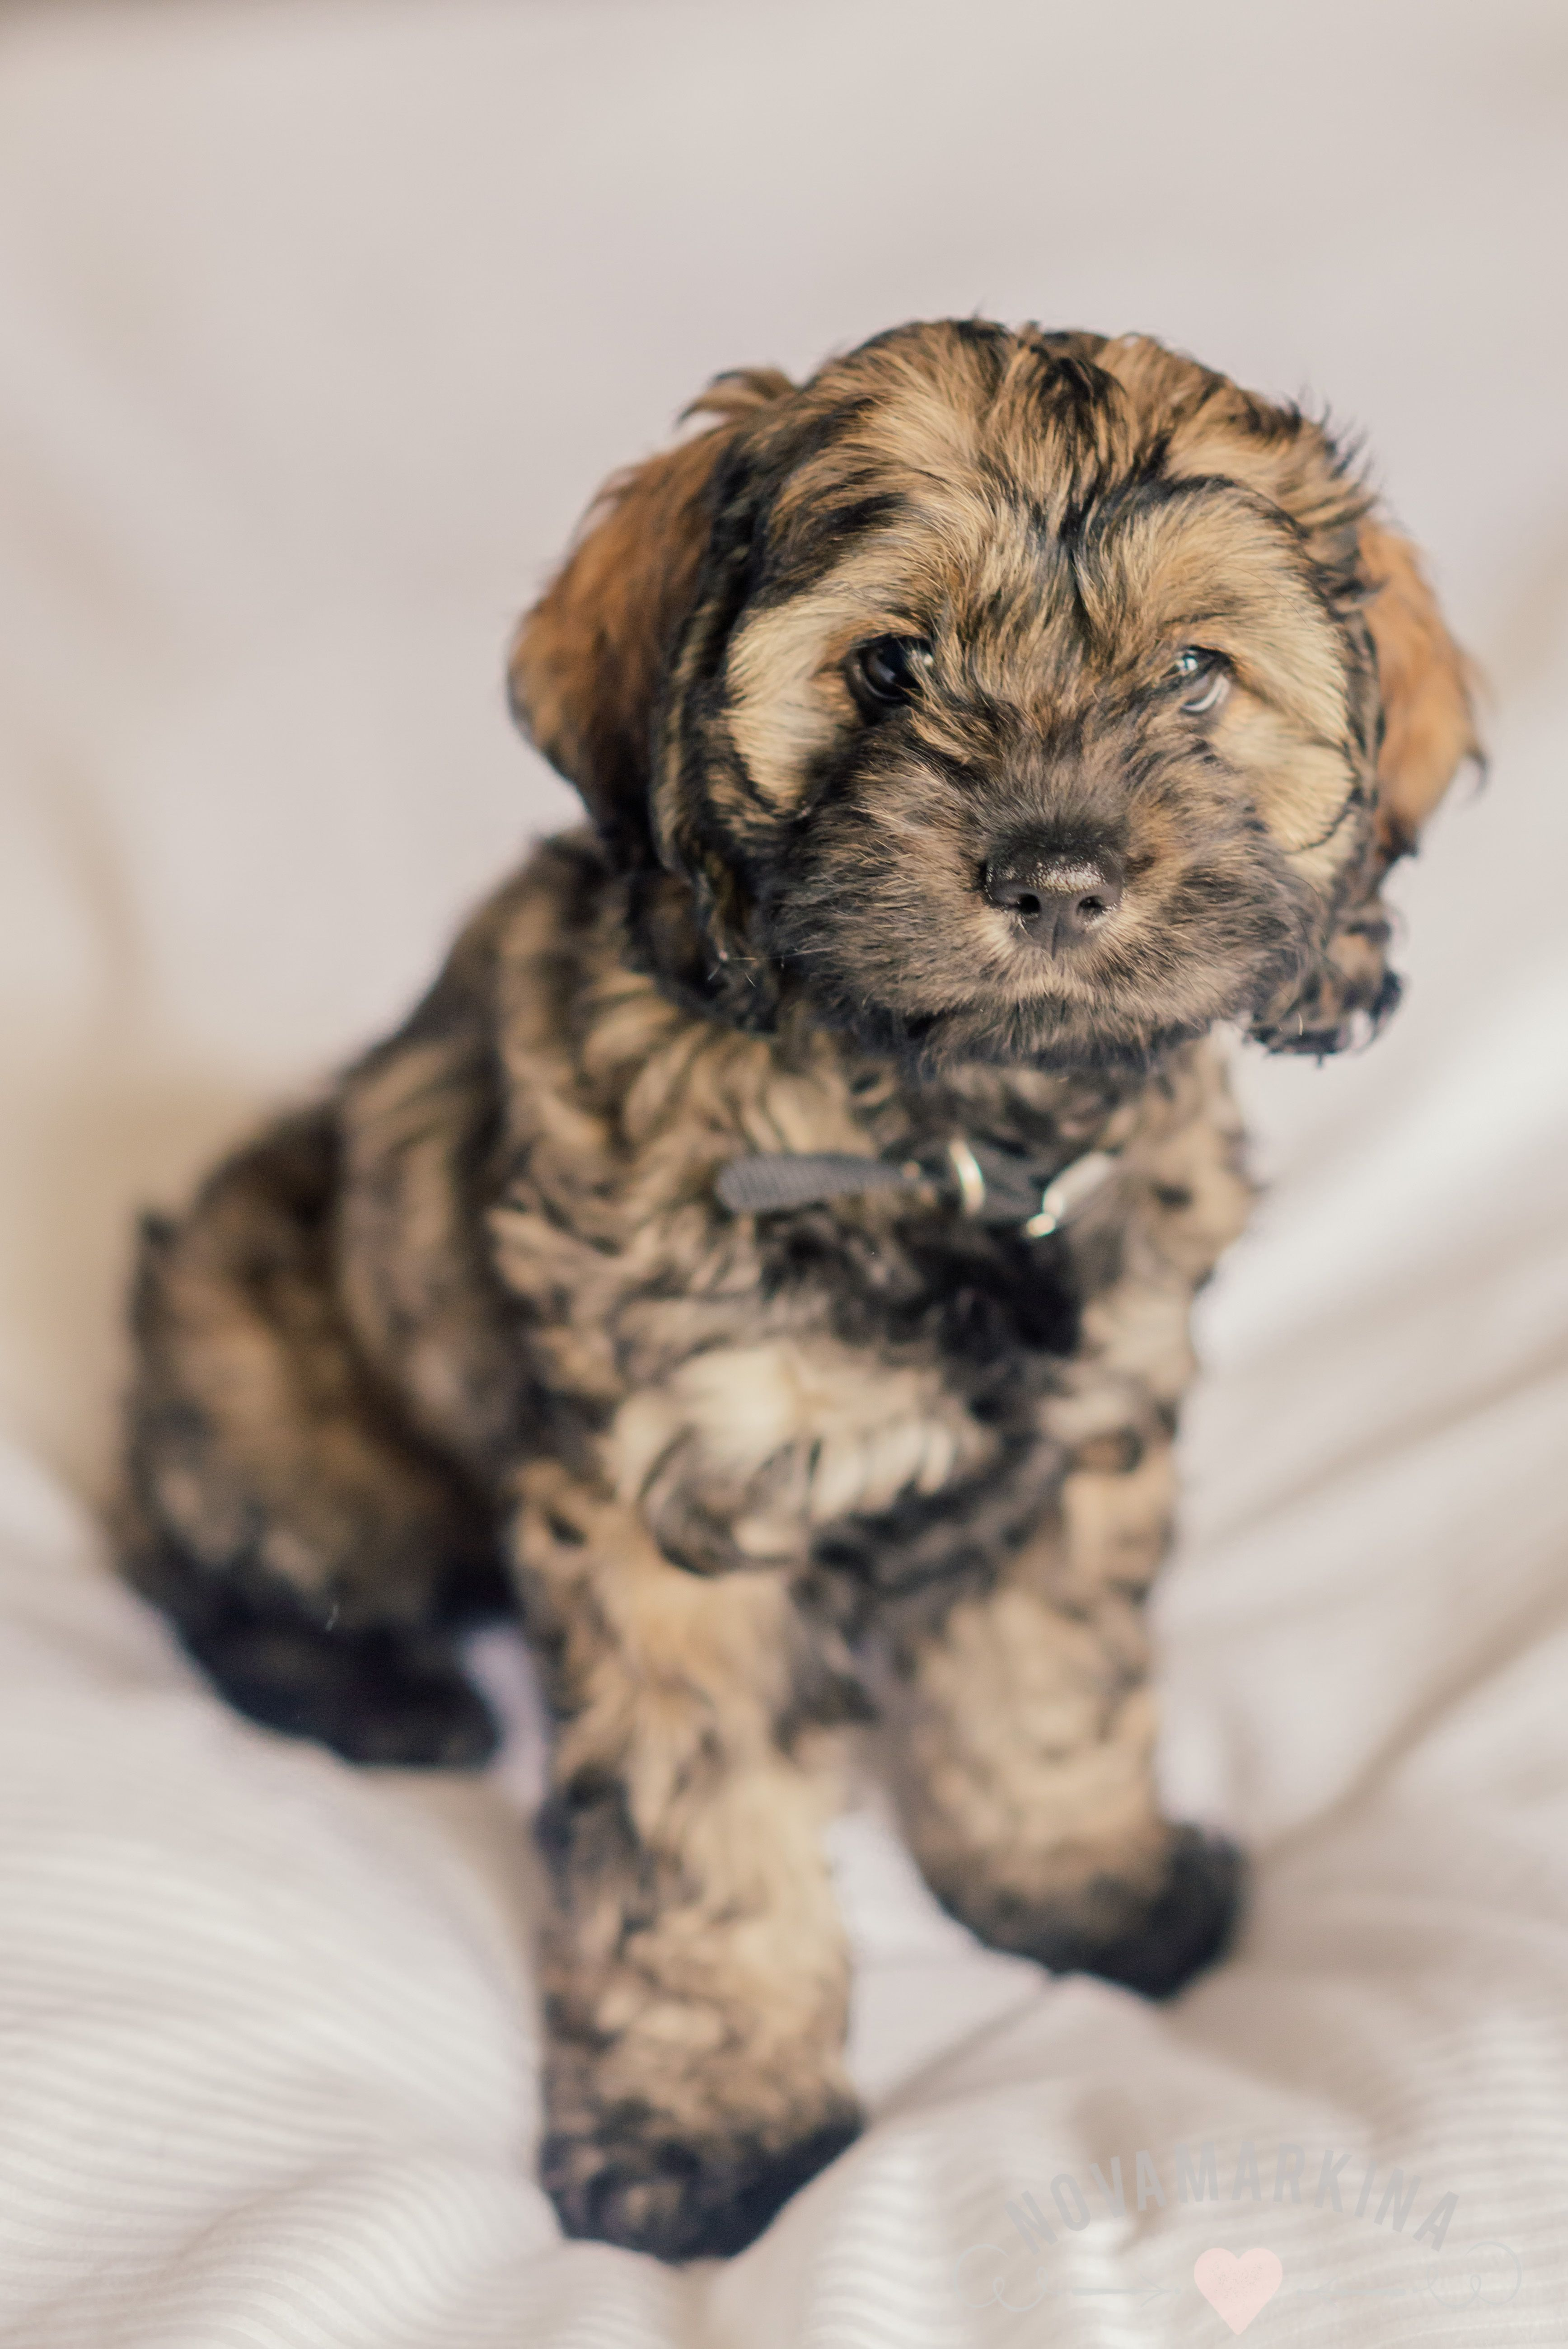 Our adorable #sable #cockapoo I just can't get enough of her face!